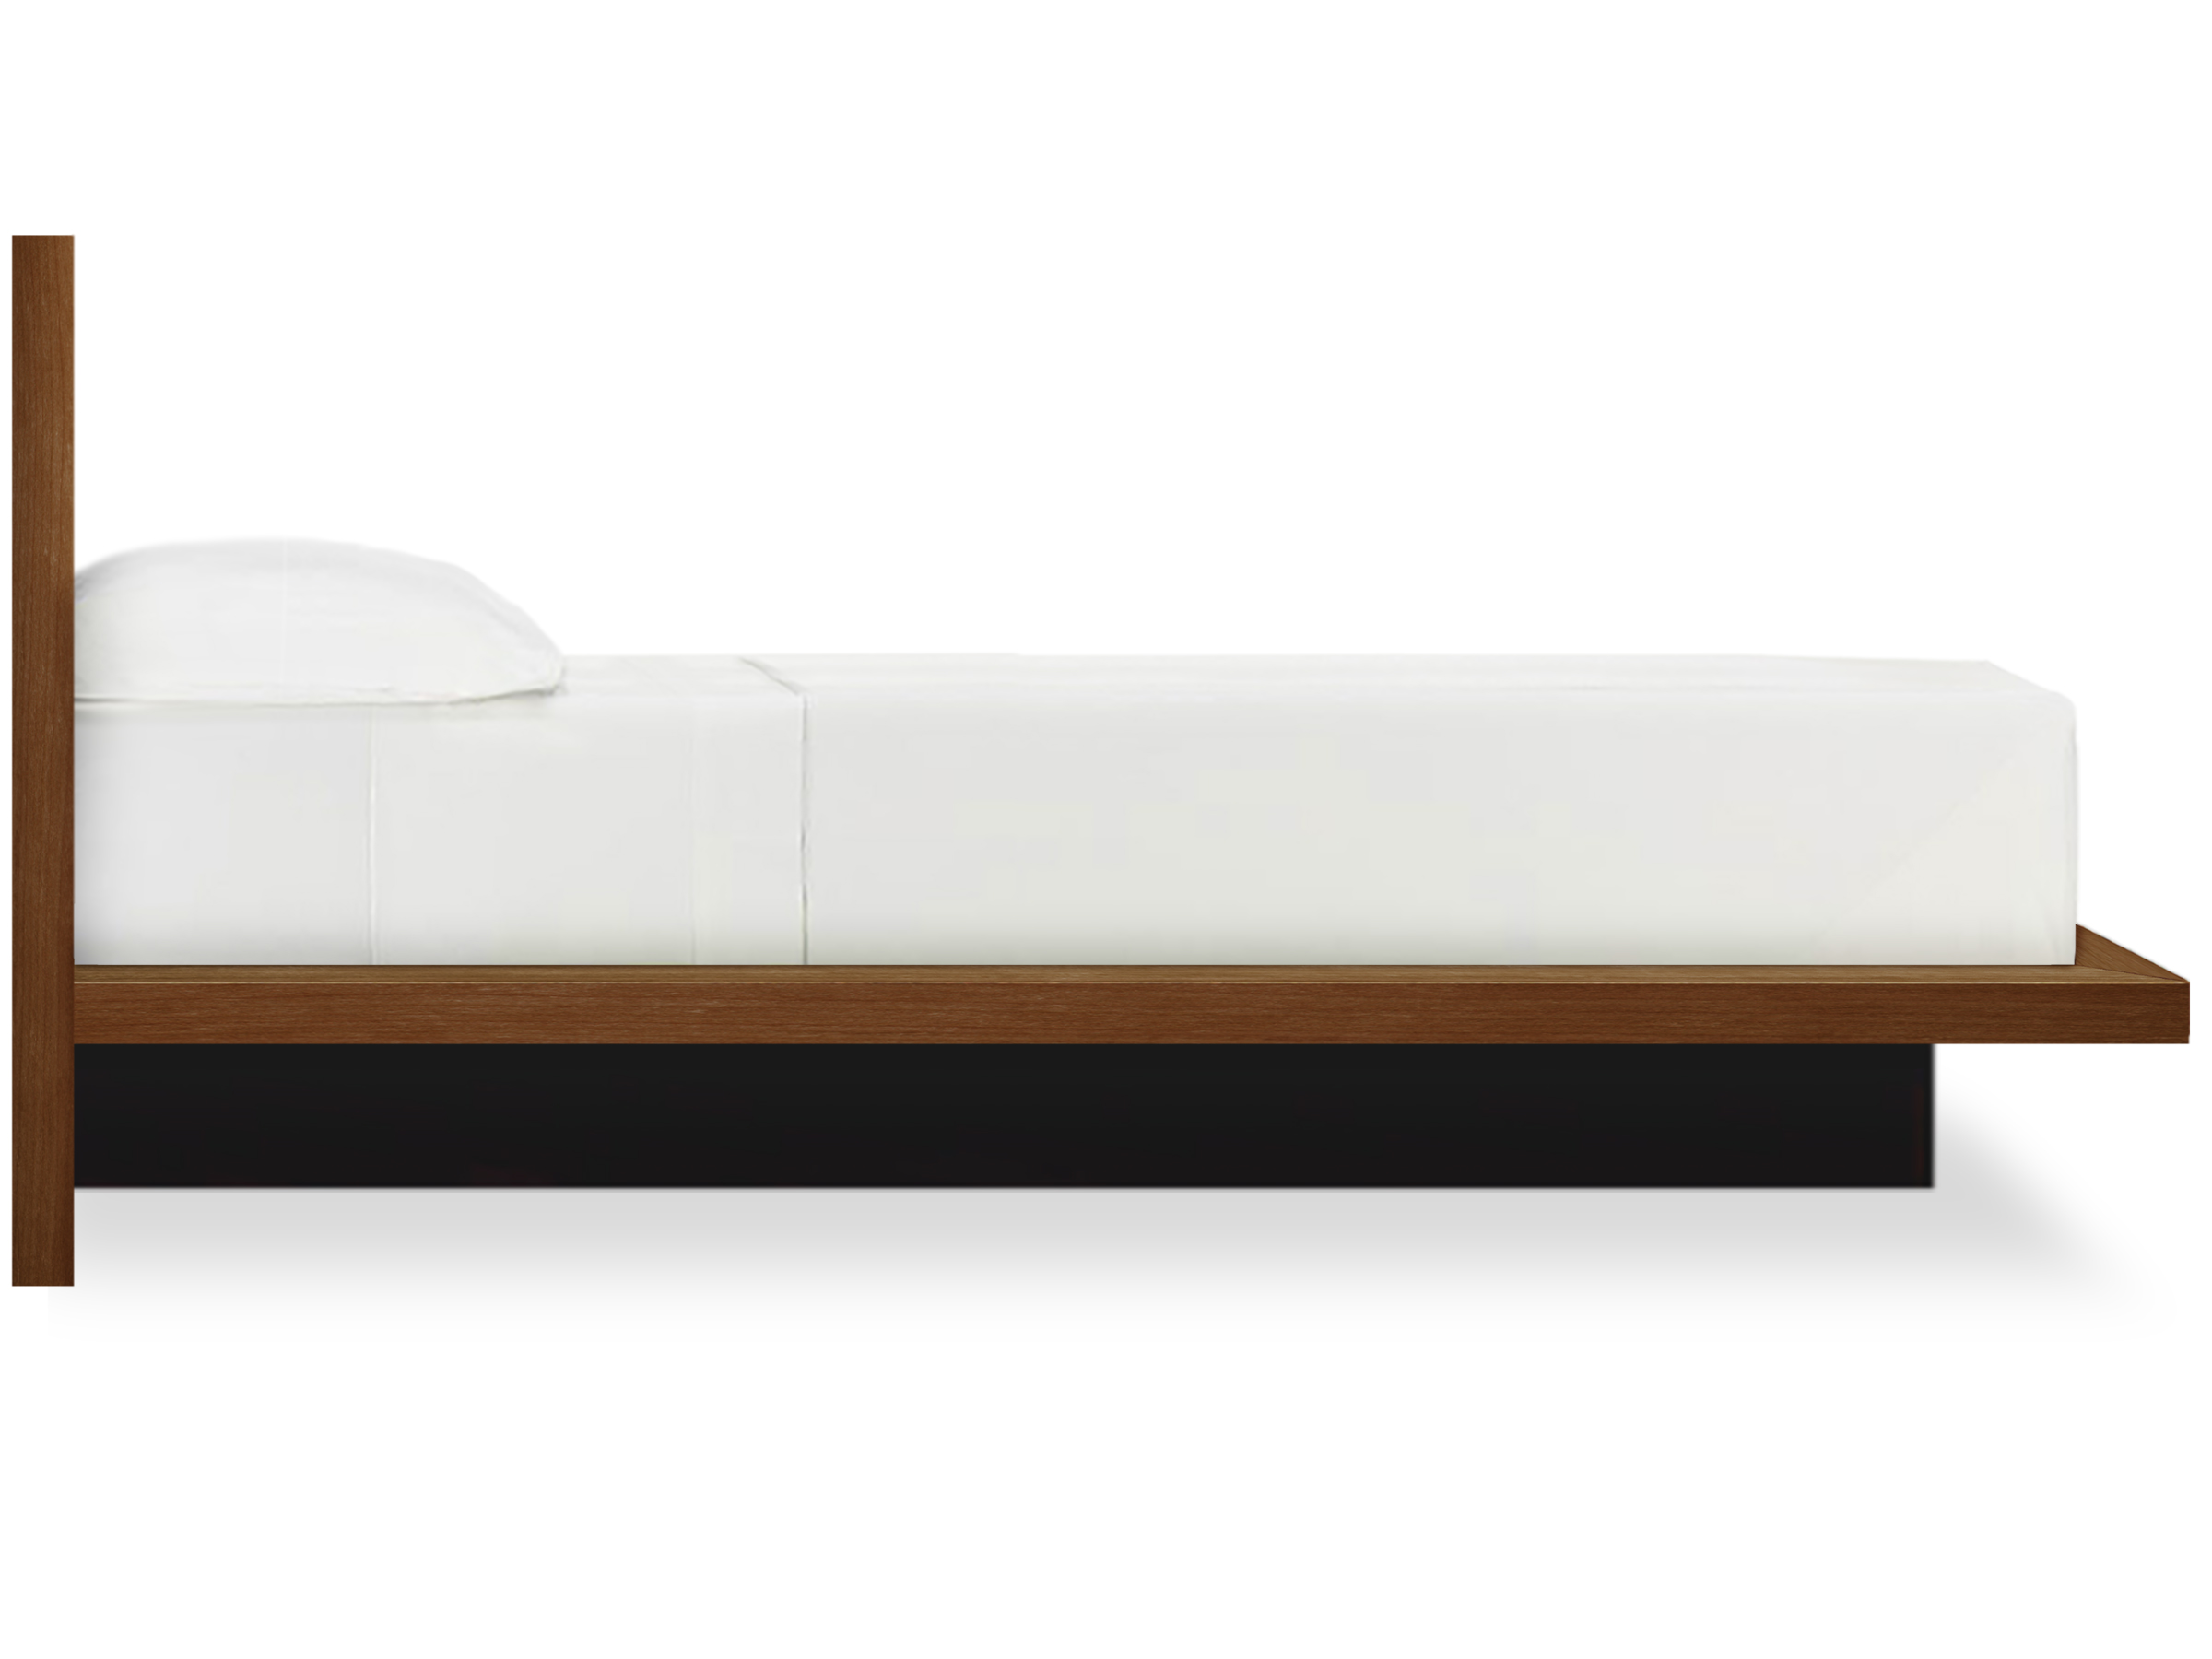 Bedroom More Modern Platform Bed Moduluxe walnut by Copeland